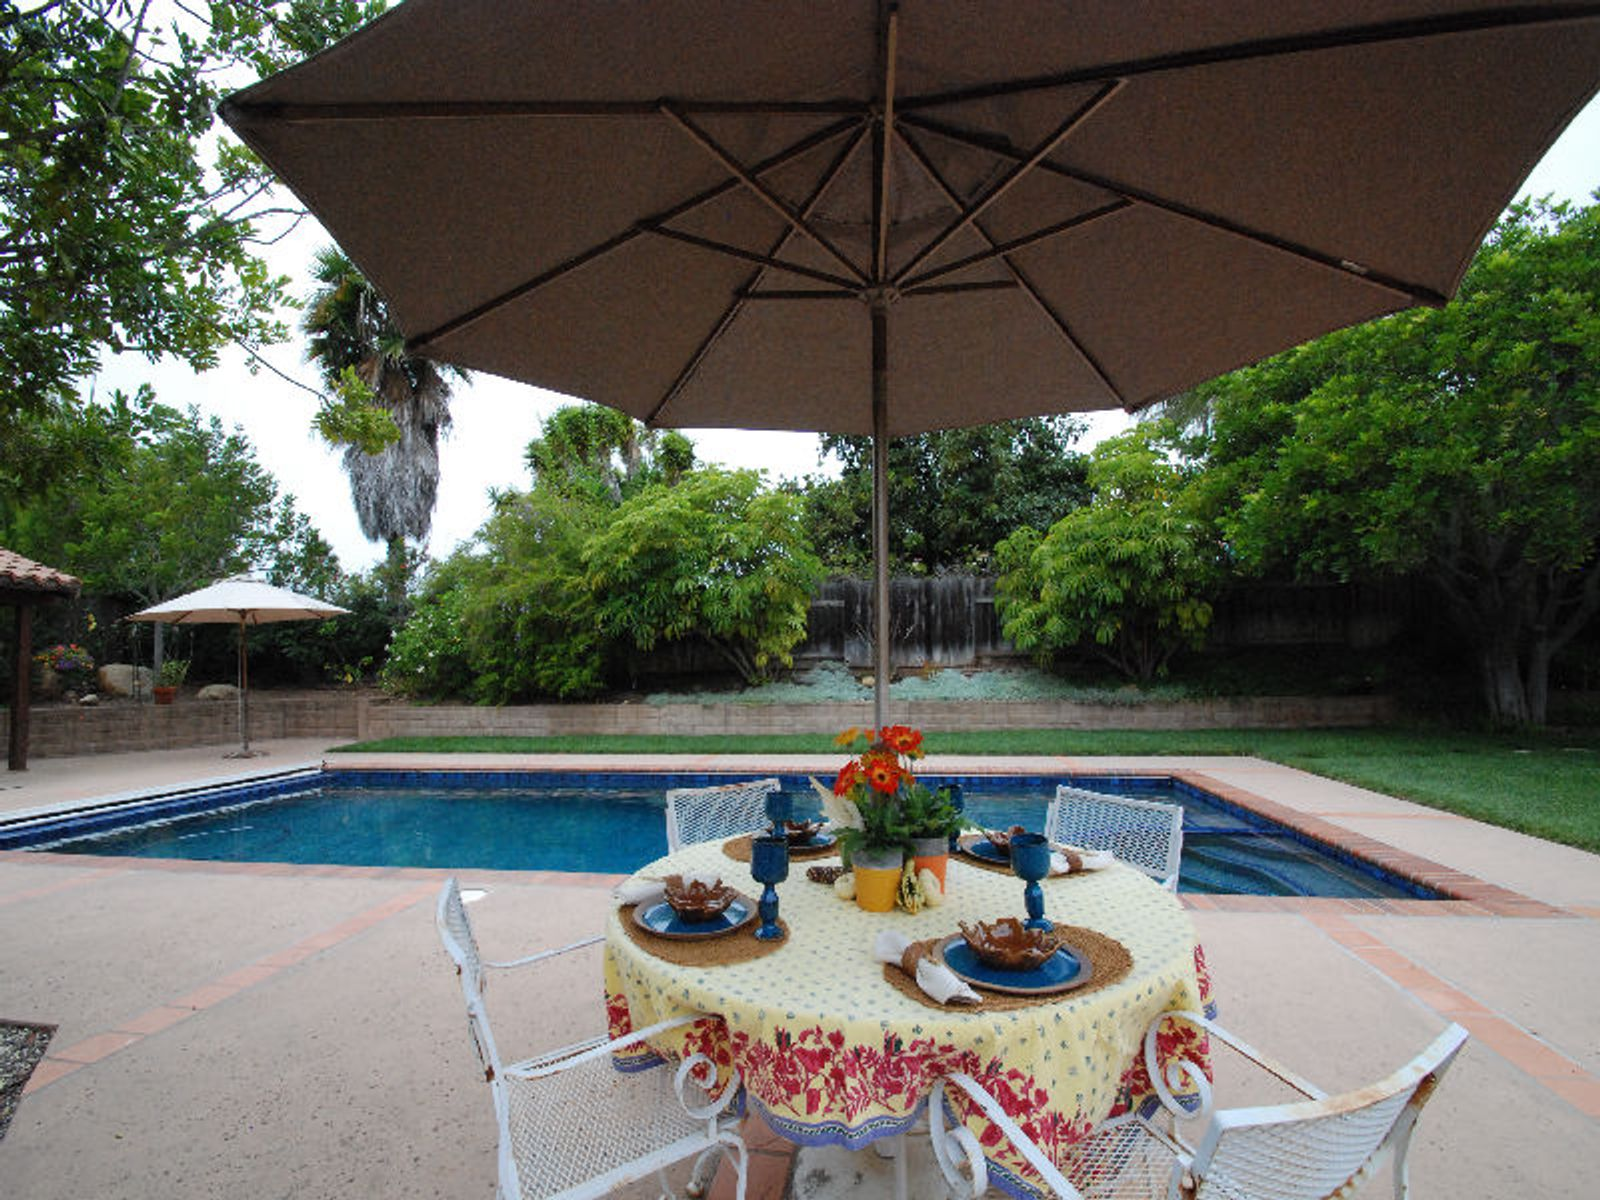 Patio Dining with View of Pool and Back Yard